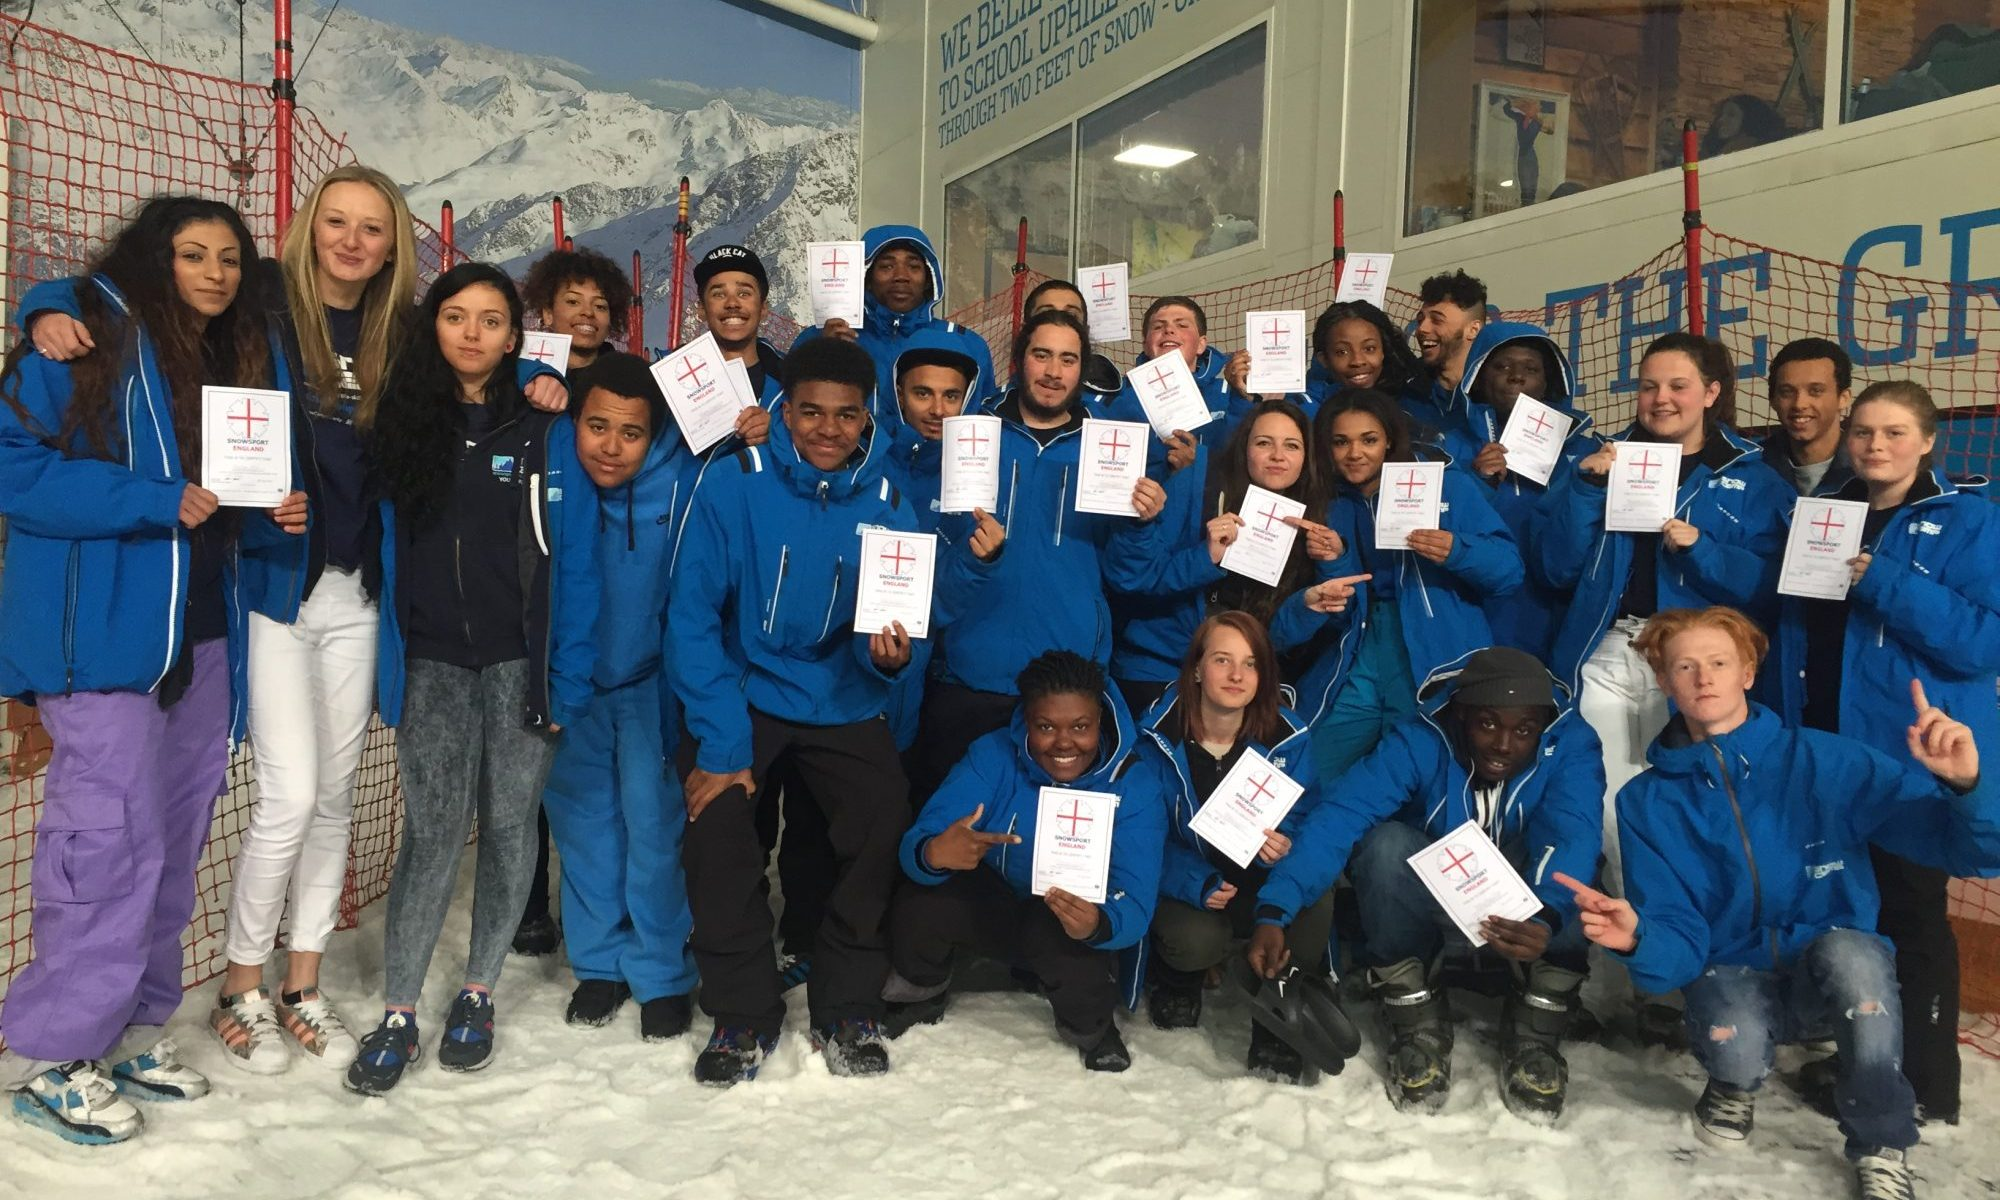 Skiworld has raised a massive £50,000 to Snow-Camp, a snow sports charity in the UK. Photo: Snow-Camp/Skiworld.